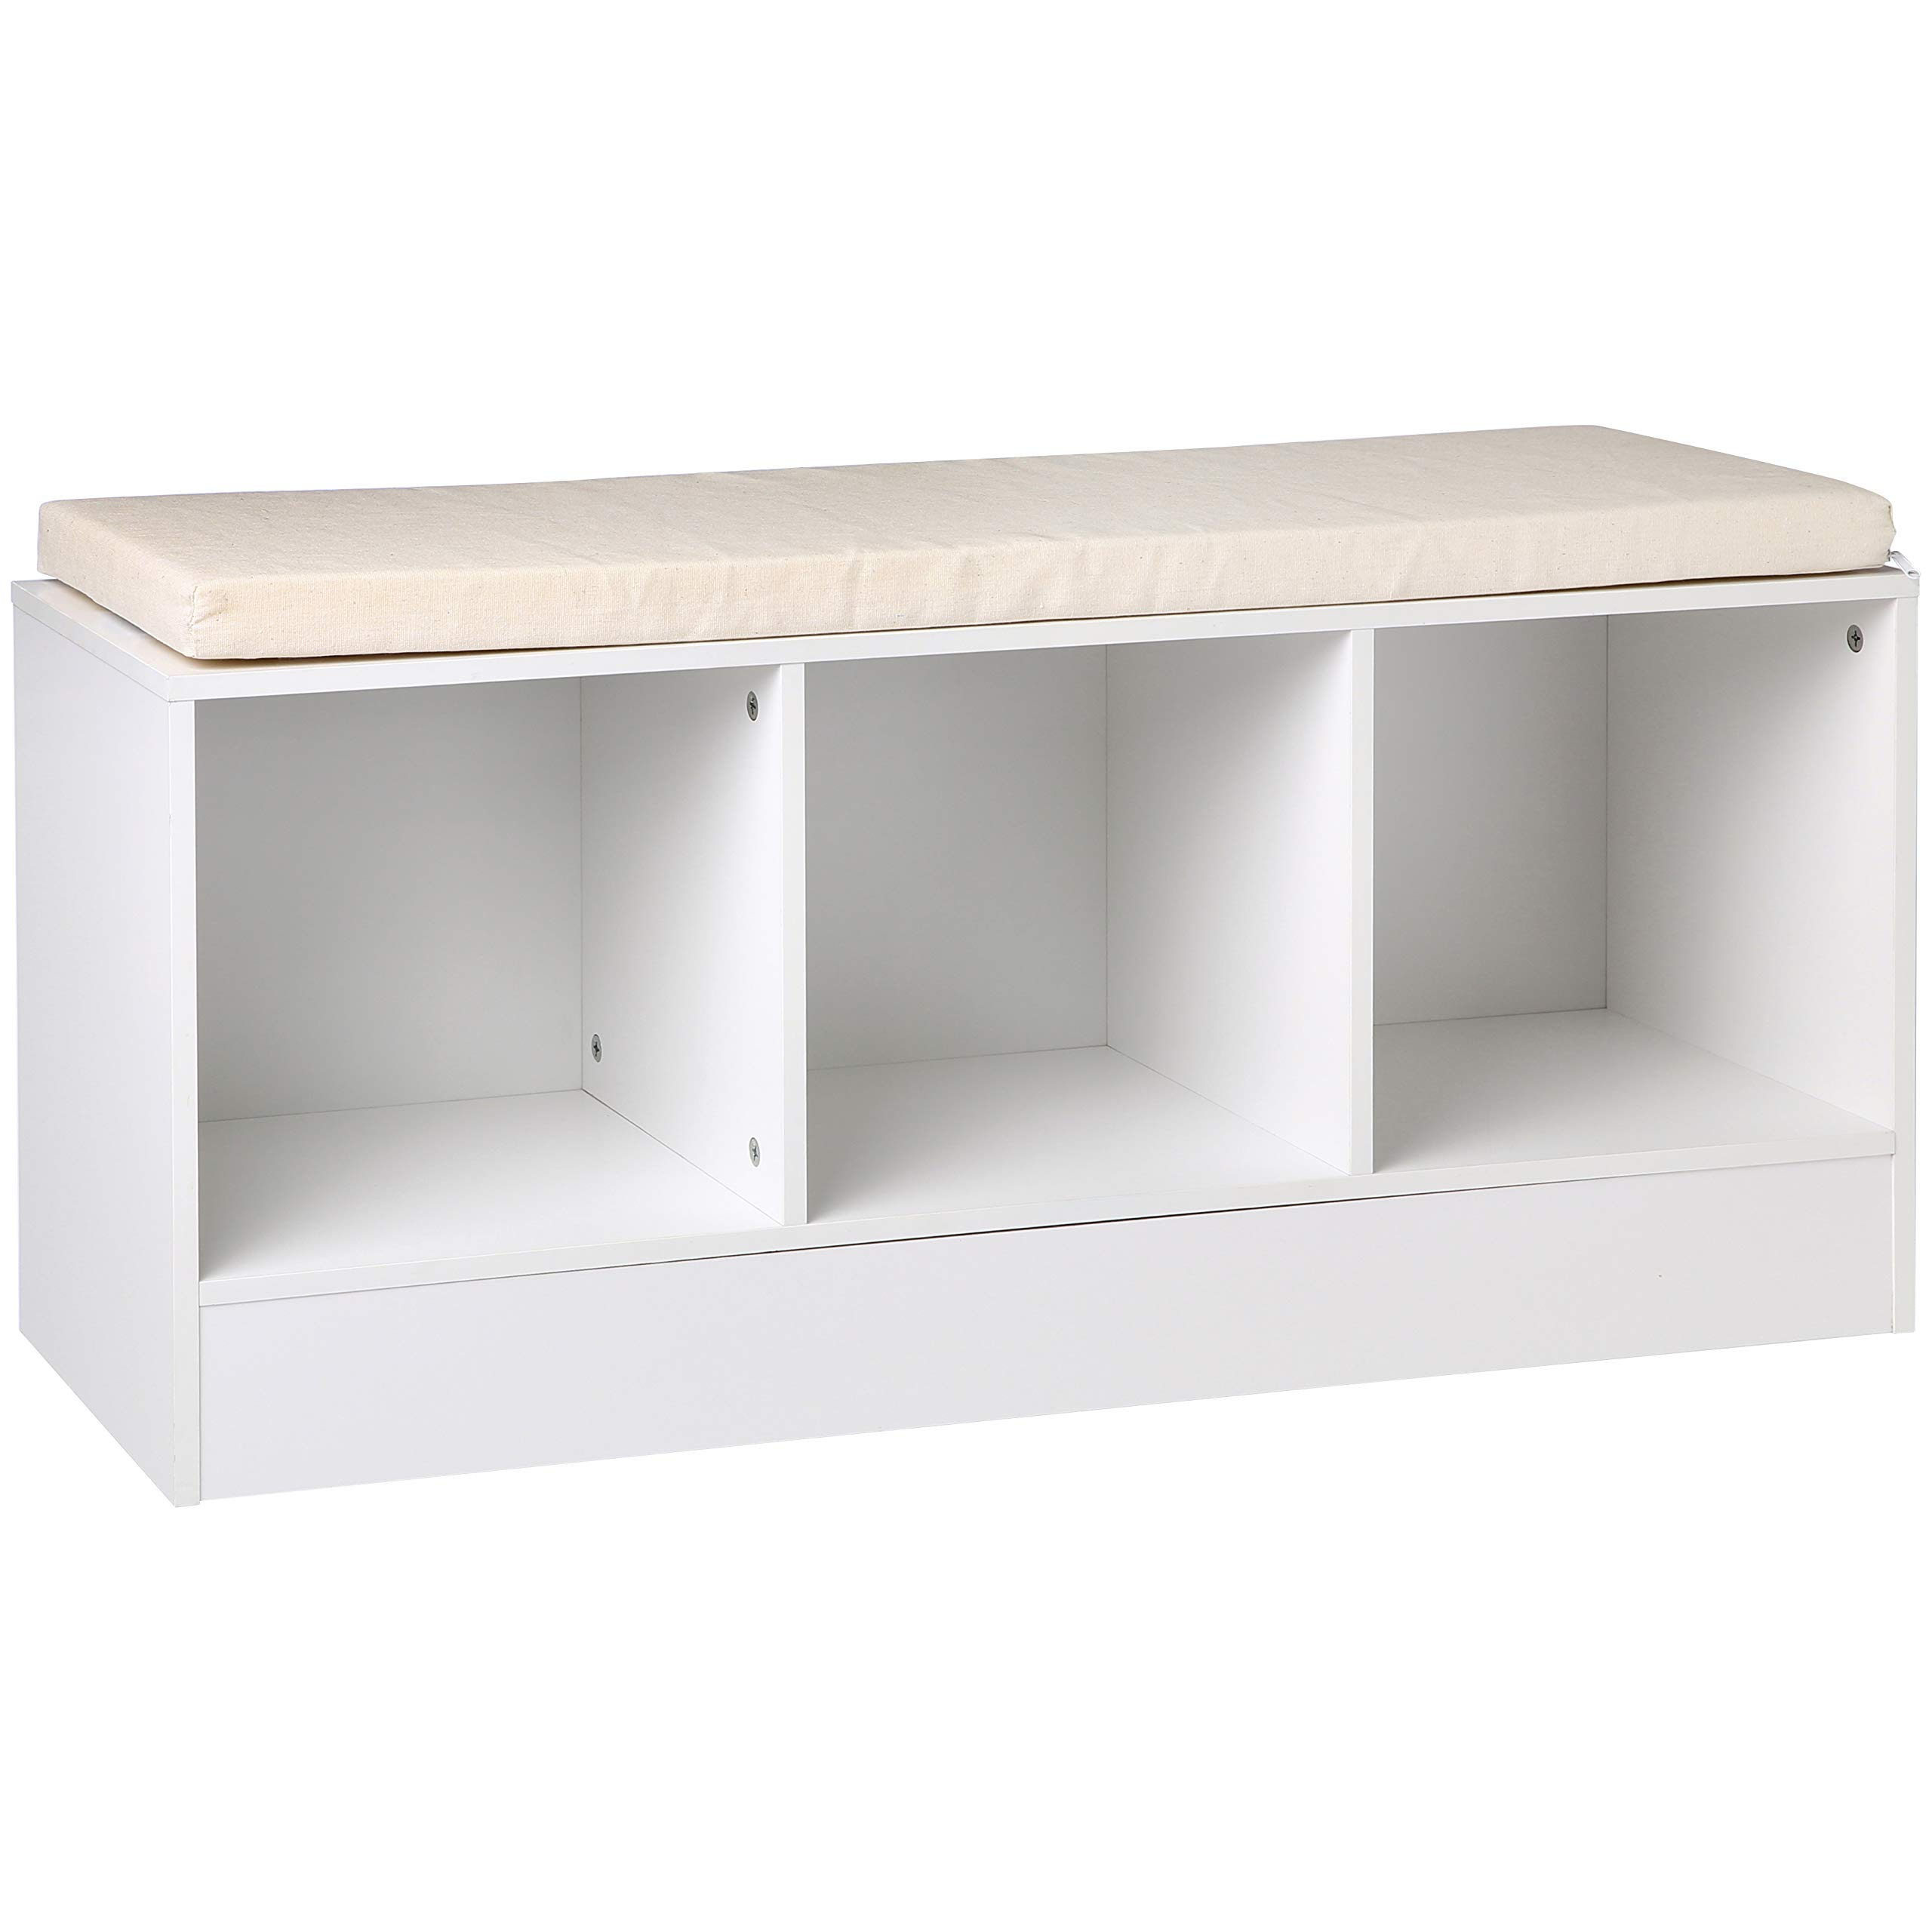 AmazonBasics 3-Cube Entryway Shoe Storage Bench with Cushioned Seat, White by AmazonBasics